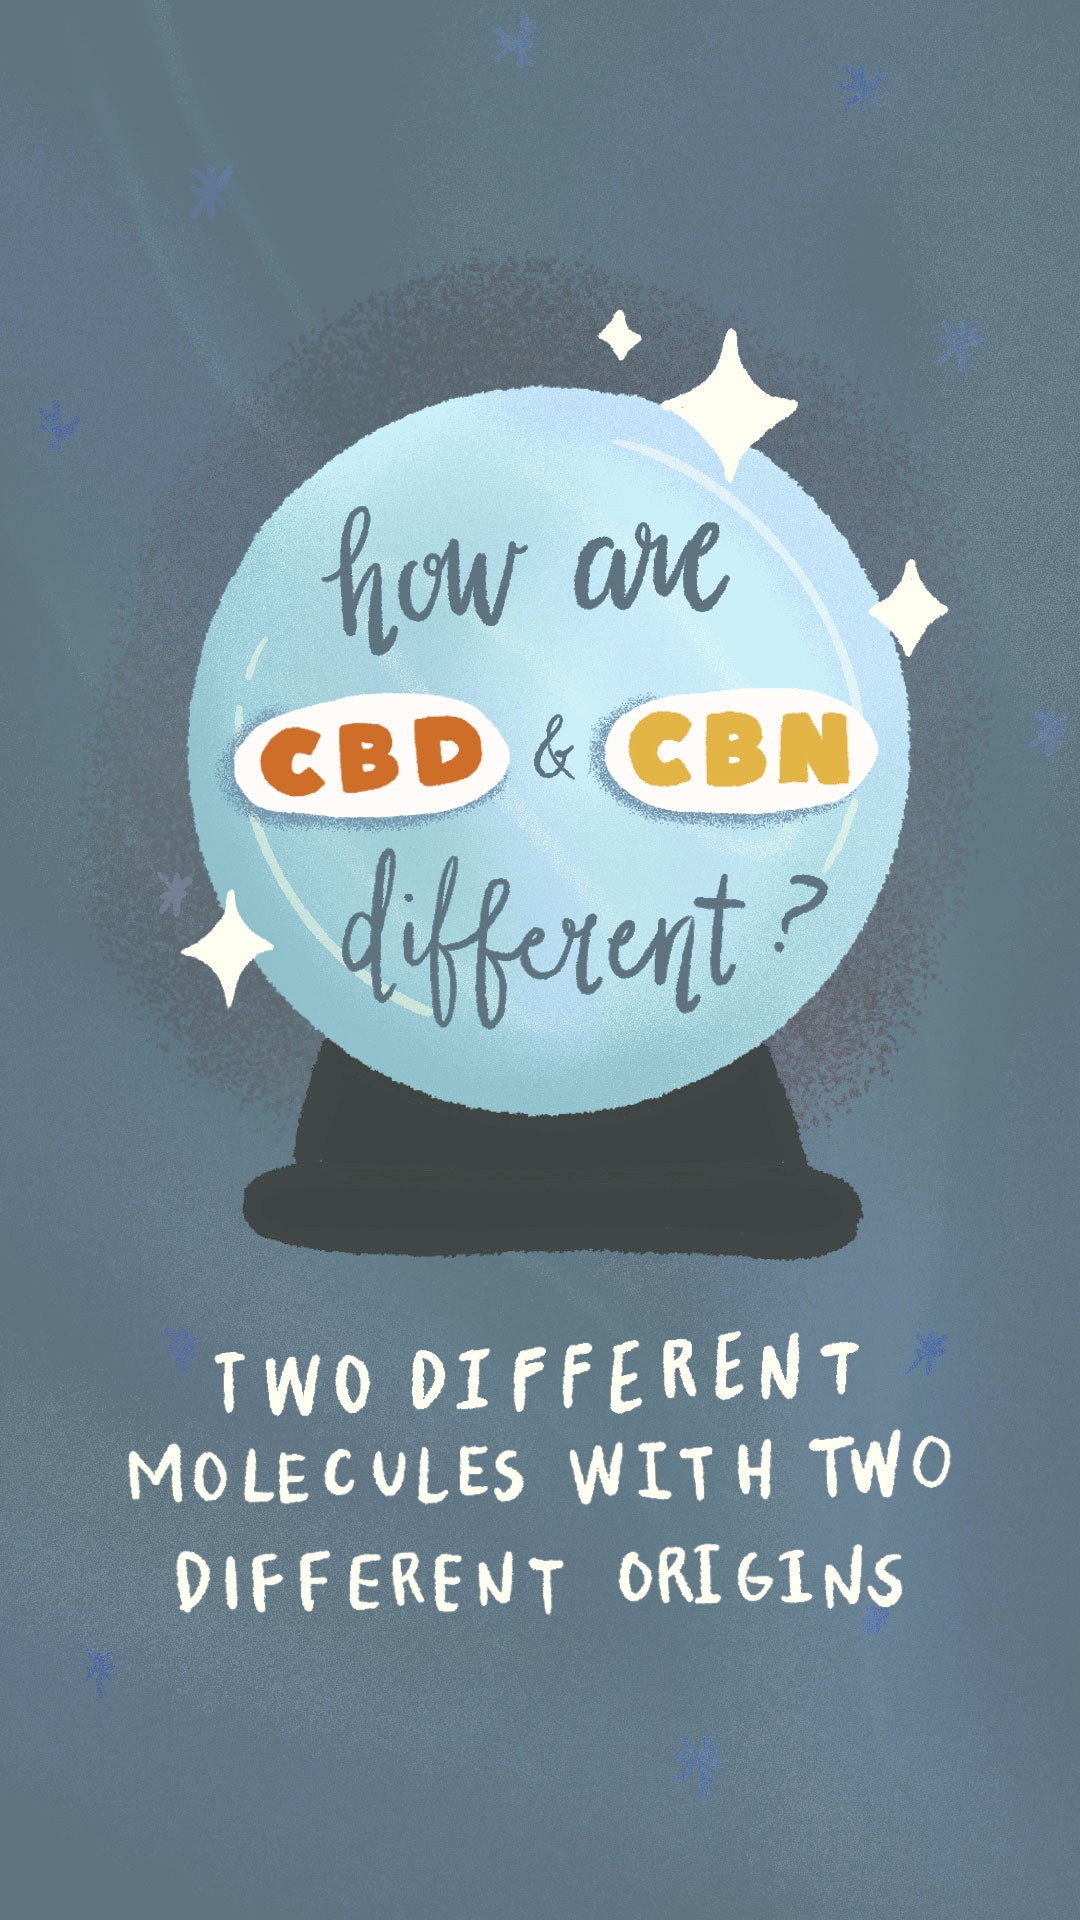 How are CBD and CBN different?